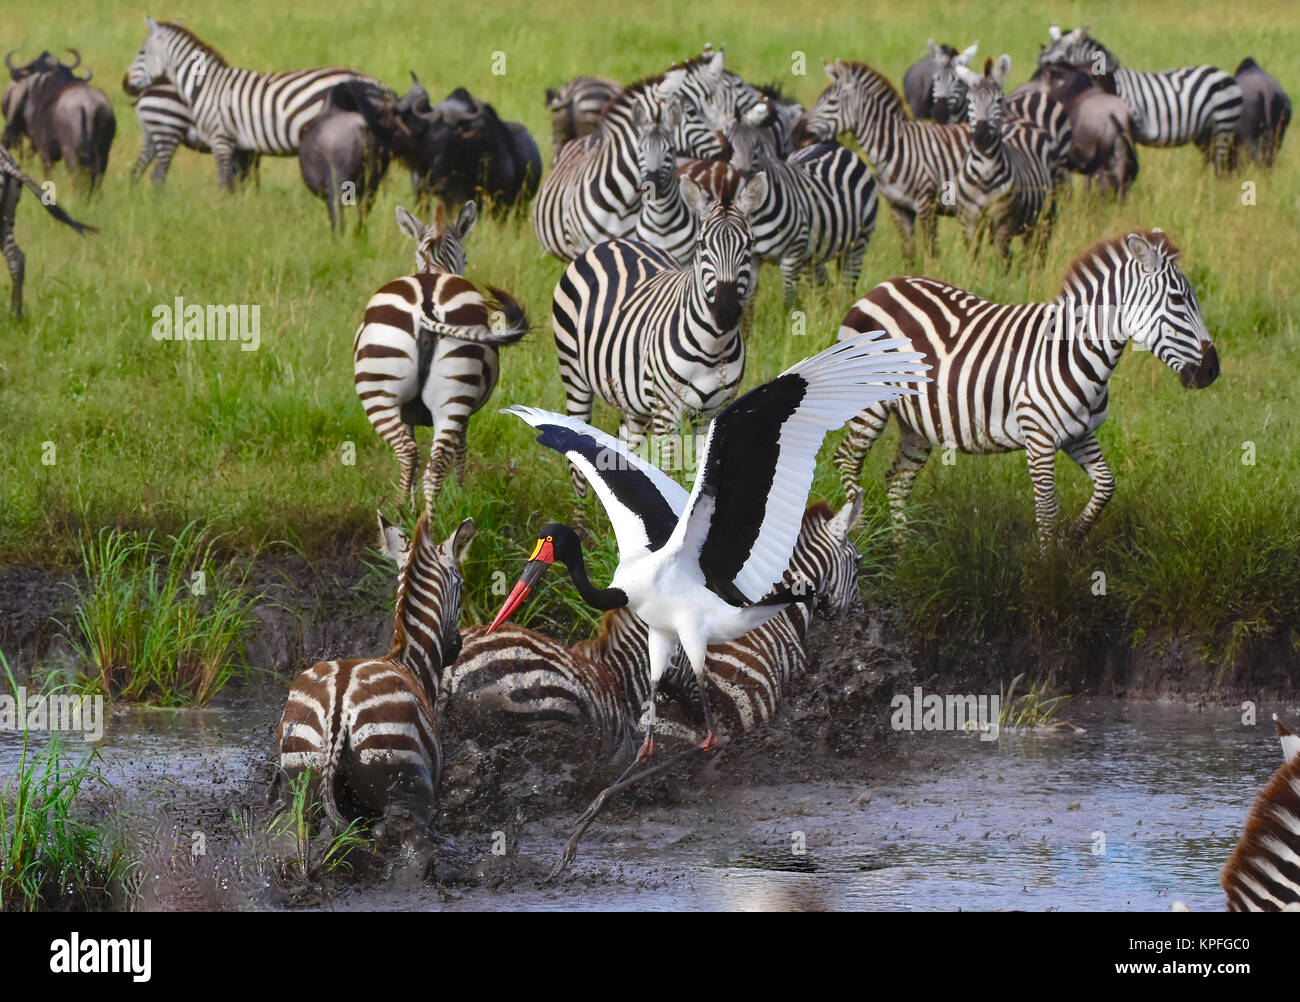 Wildlife sightseeing in one of the prime wildlife destinations on earth, Serengeti, Tanzania. stampeding zebra at - Stock Image